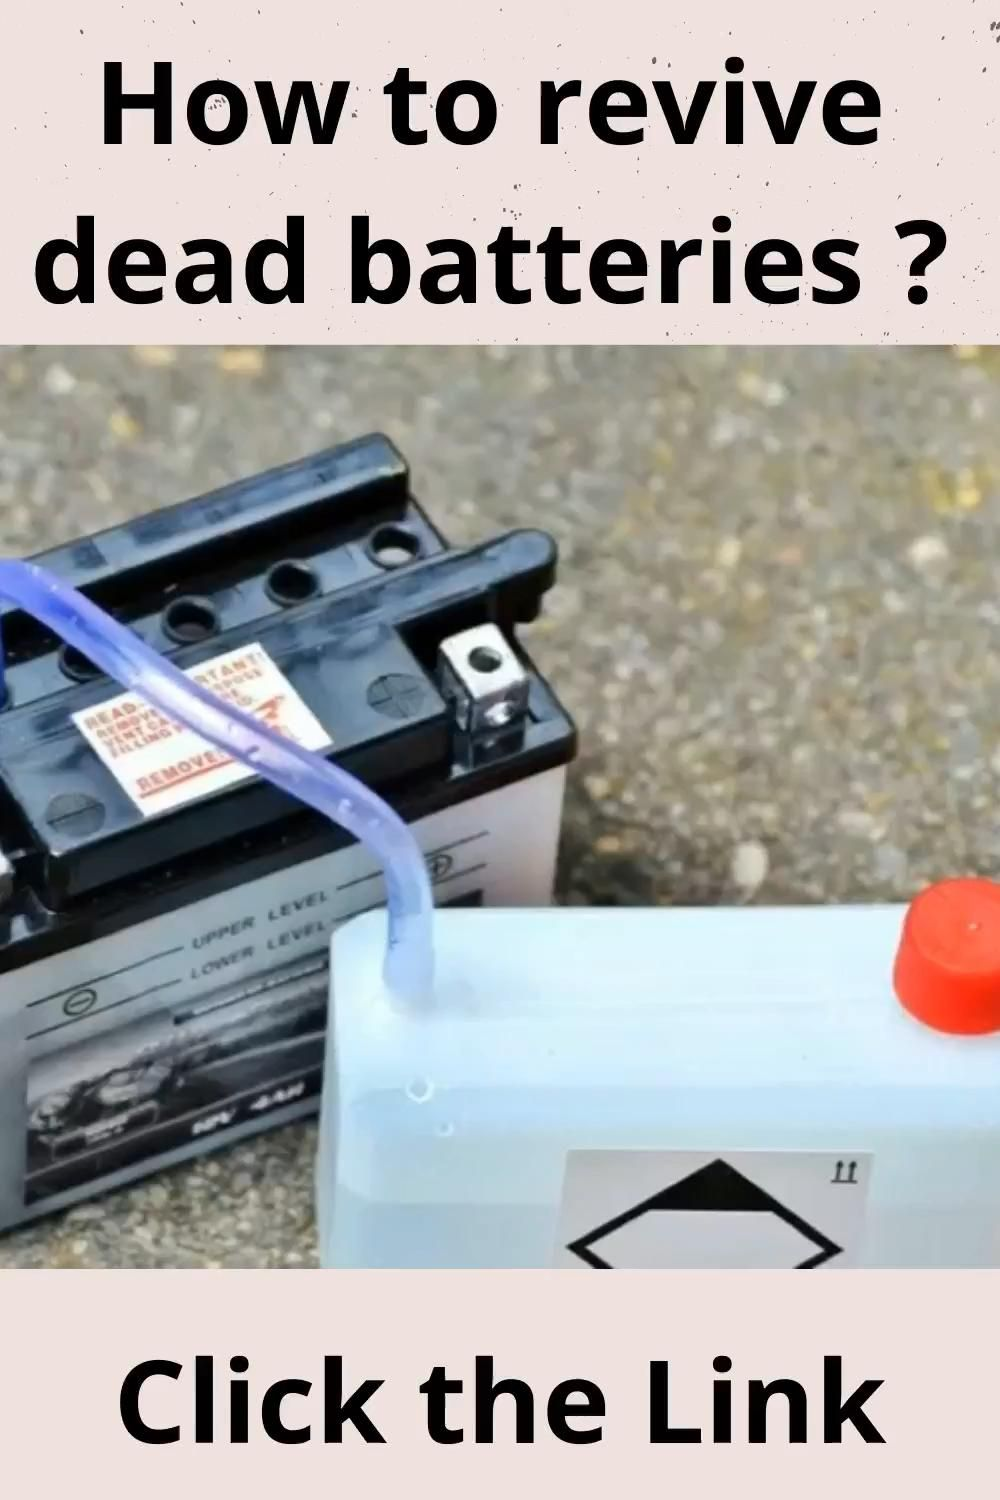 How To Restore A Battery Reconditioning Nicad Batteries Battery Reconditioning Business Fix It Video Car Battery Hacks Battery Repair Batteries Diy